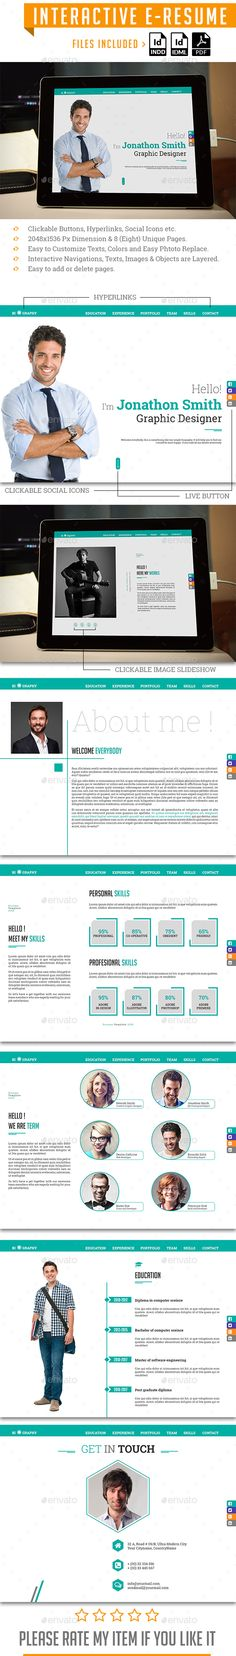 Interactive Pdf Indesign Template